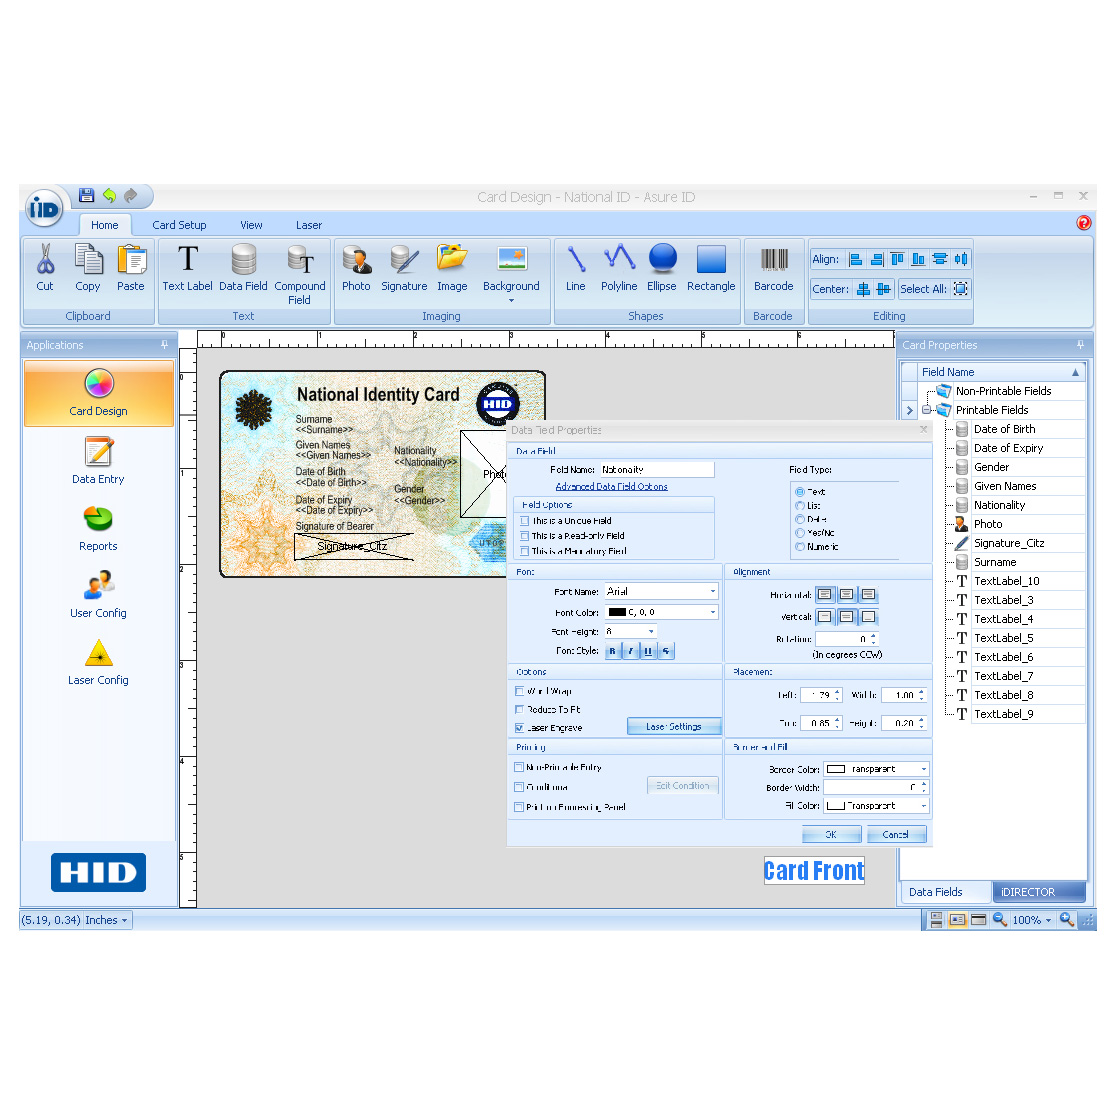 Asure Id Express Credential Management And Personalization Solution Hid Global